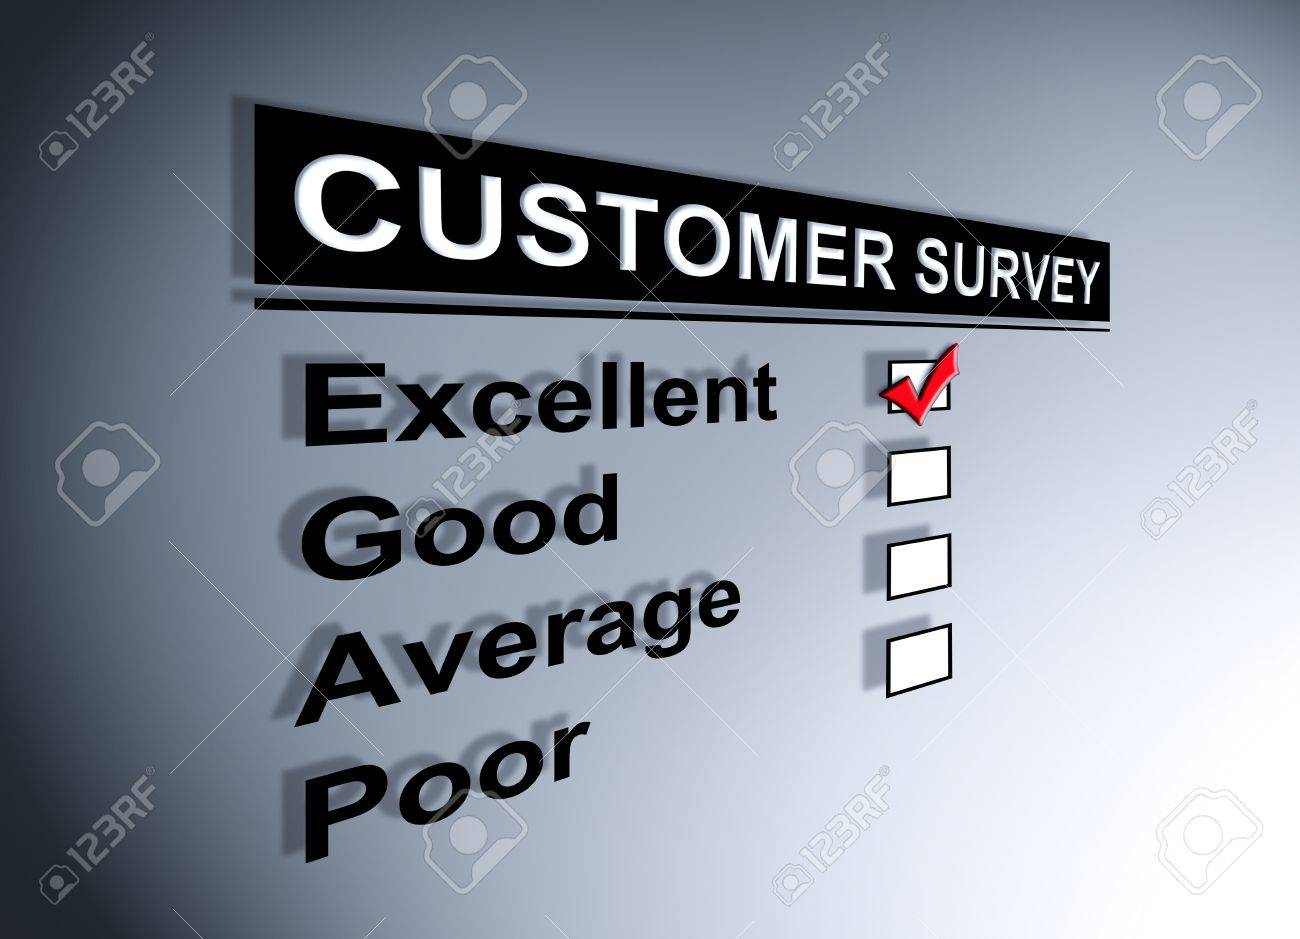 Excellent experience checkbox ticked in customer service survey form Stock Photo - 13761697